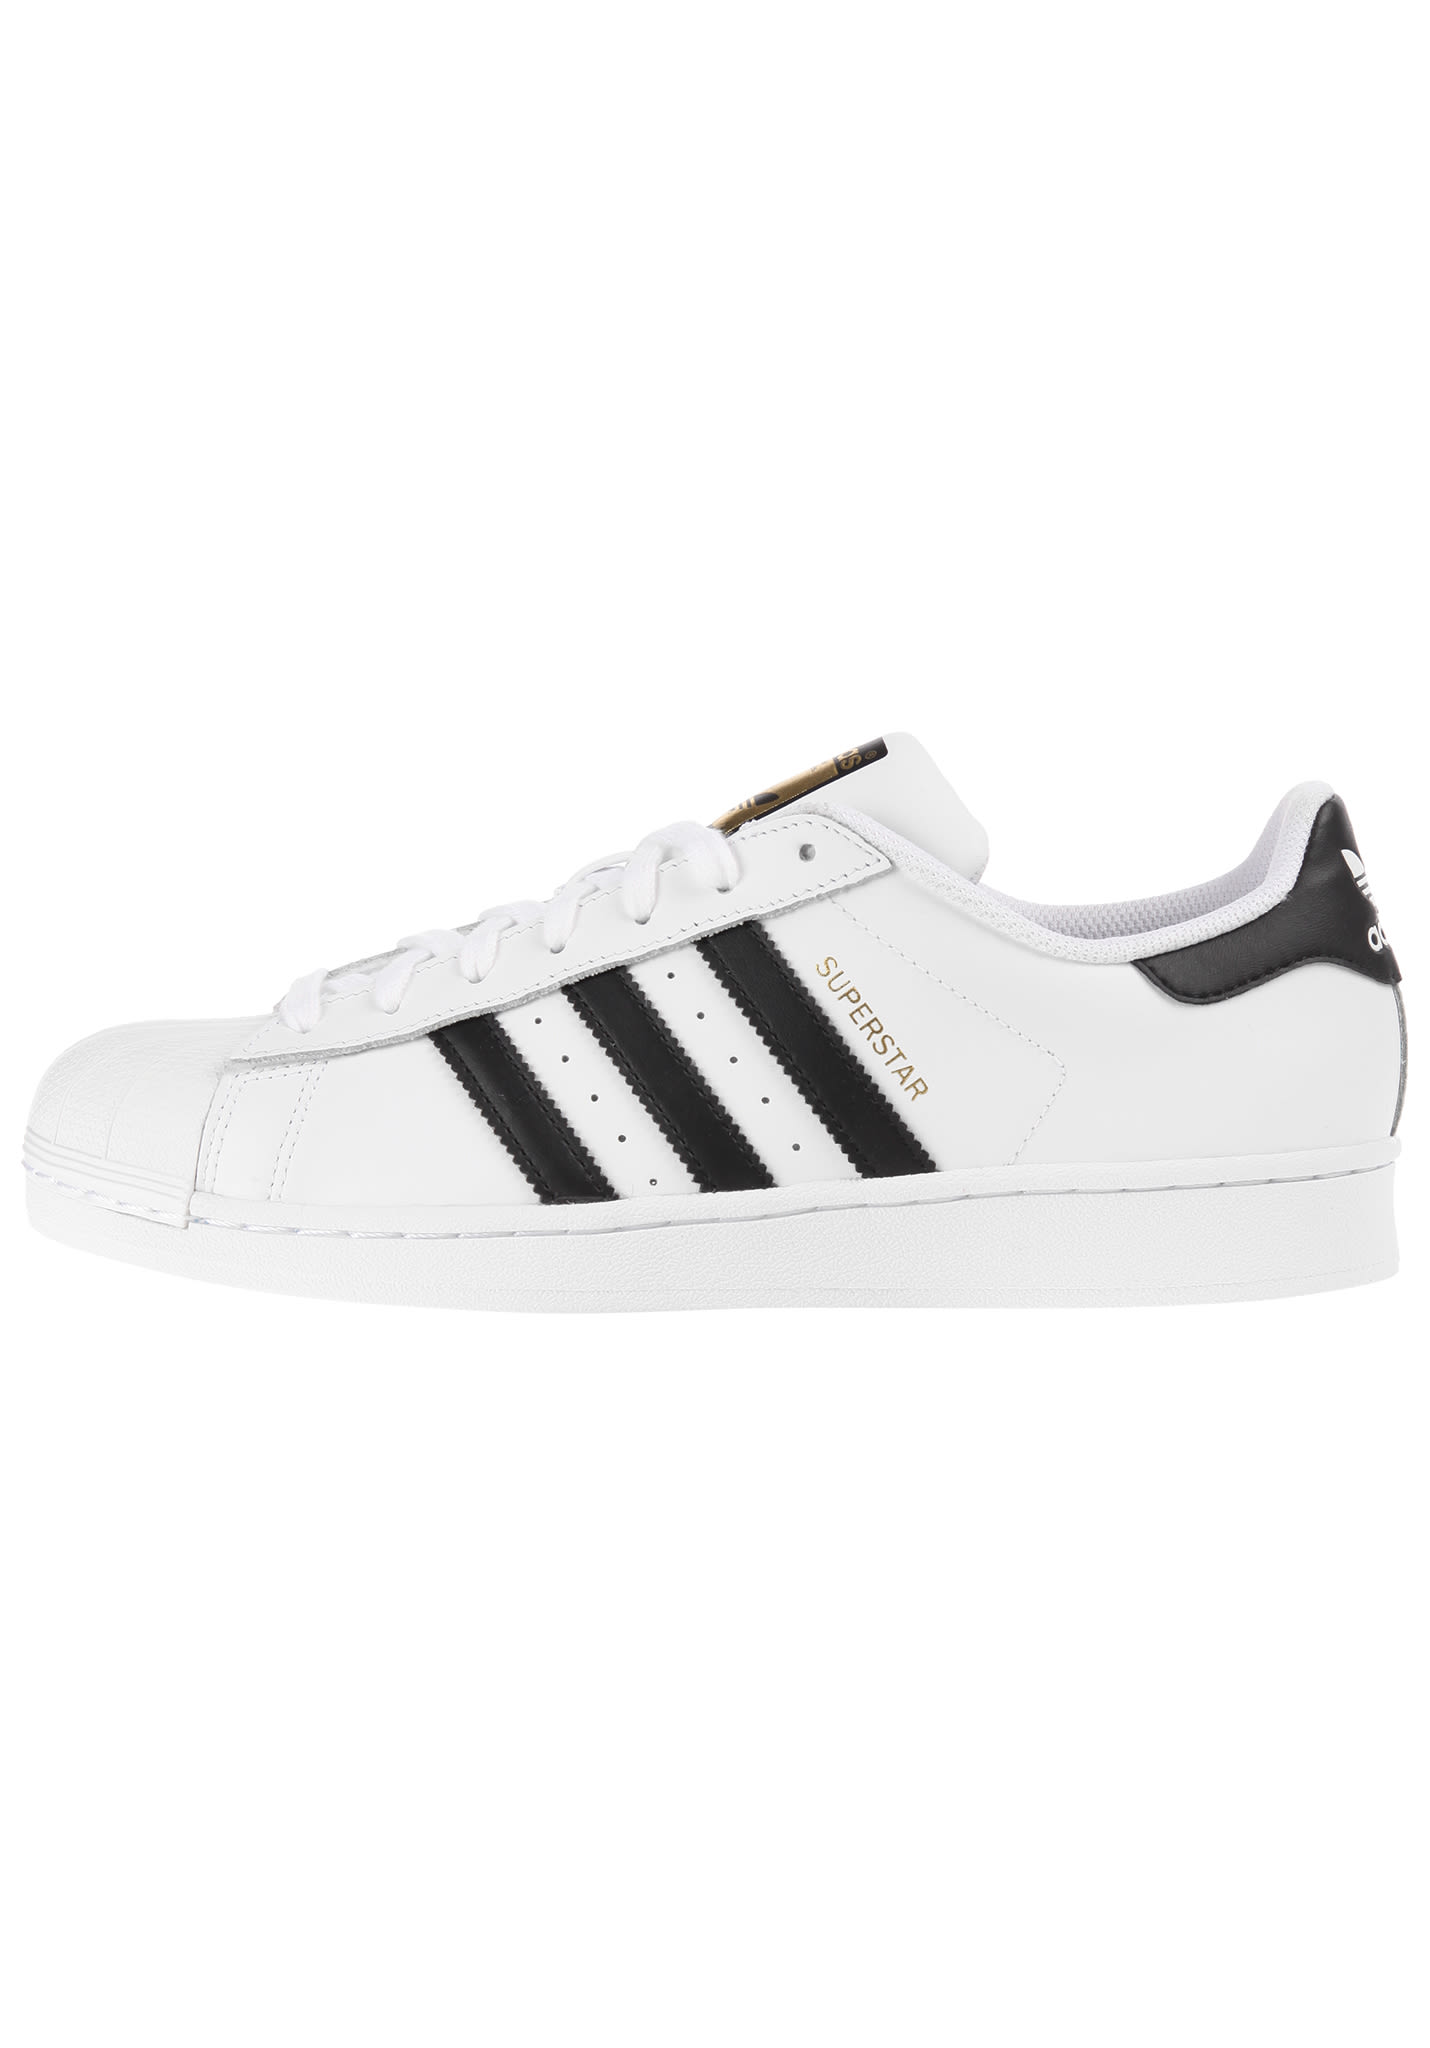 nouvelle collection 03085 1c8ff Adidas Superstar 2016 Prix ChaussureAdidasonlineoutlet.fr